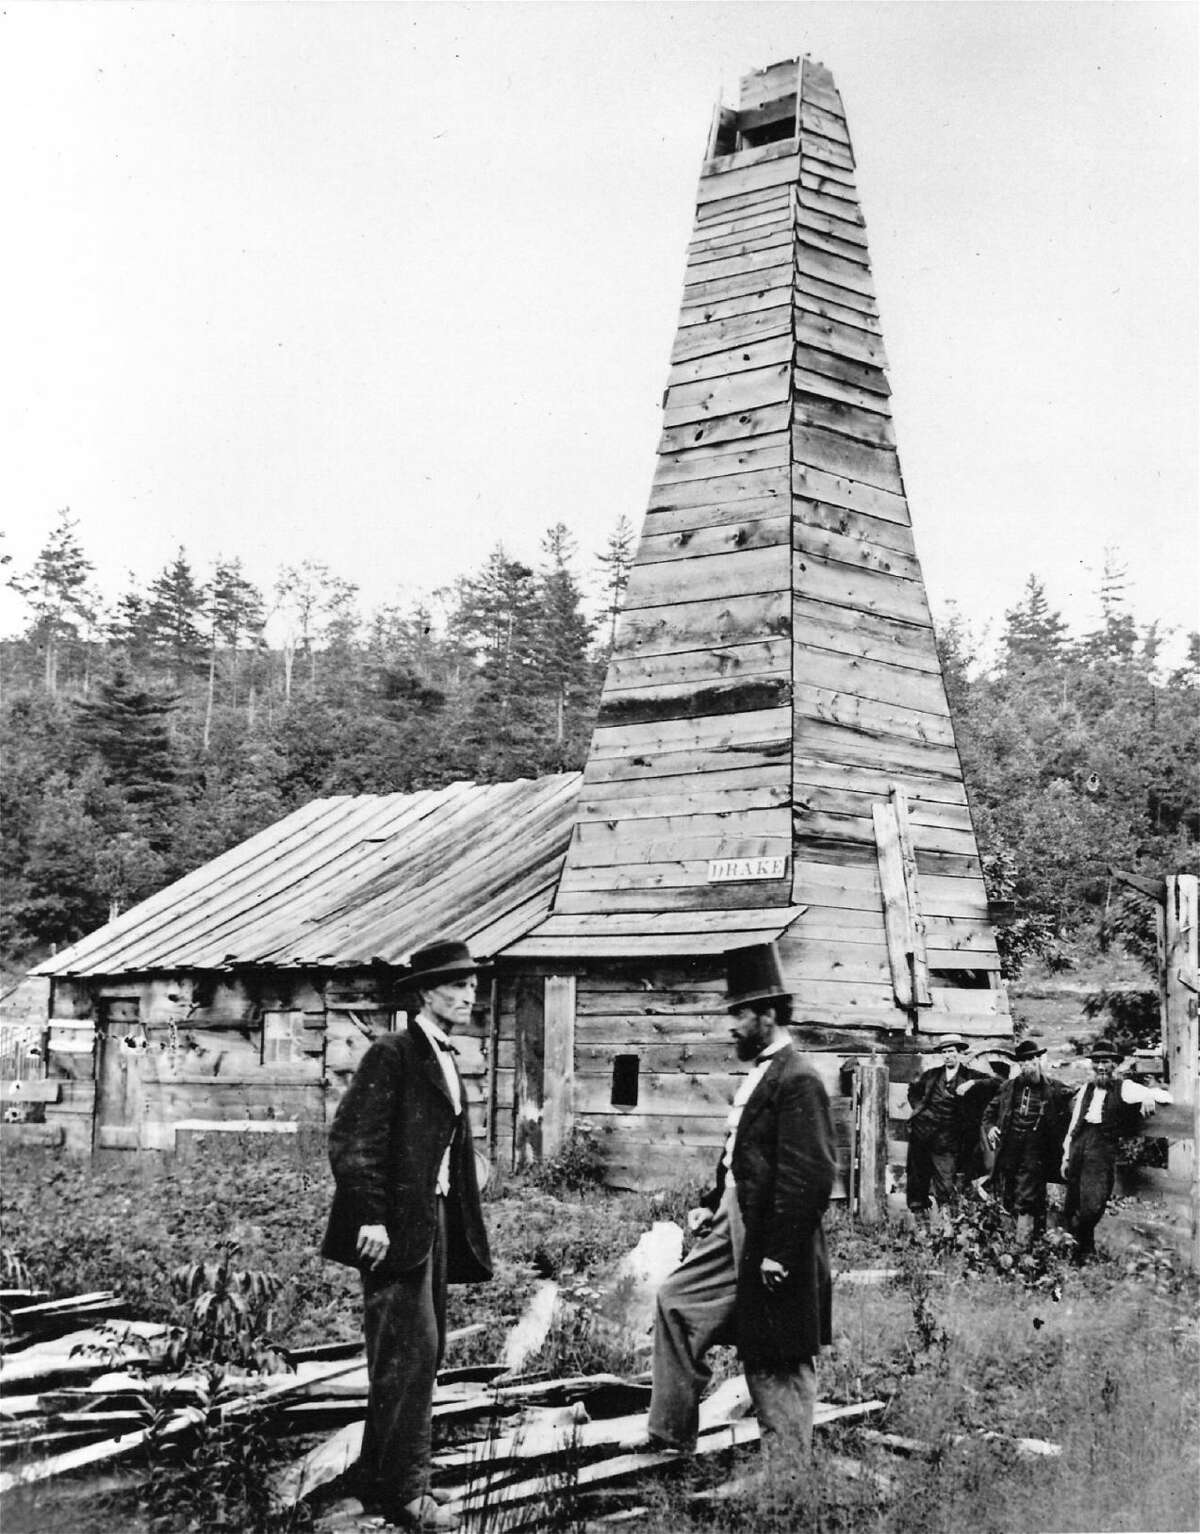 DW676 - Edwin L. Drake (right) in front of the Drake Well engine house in 1861.